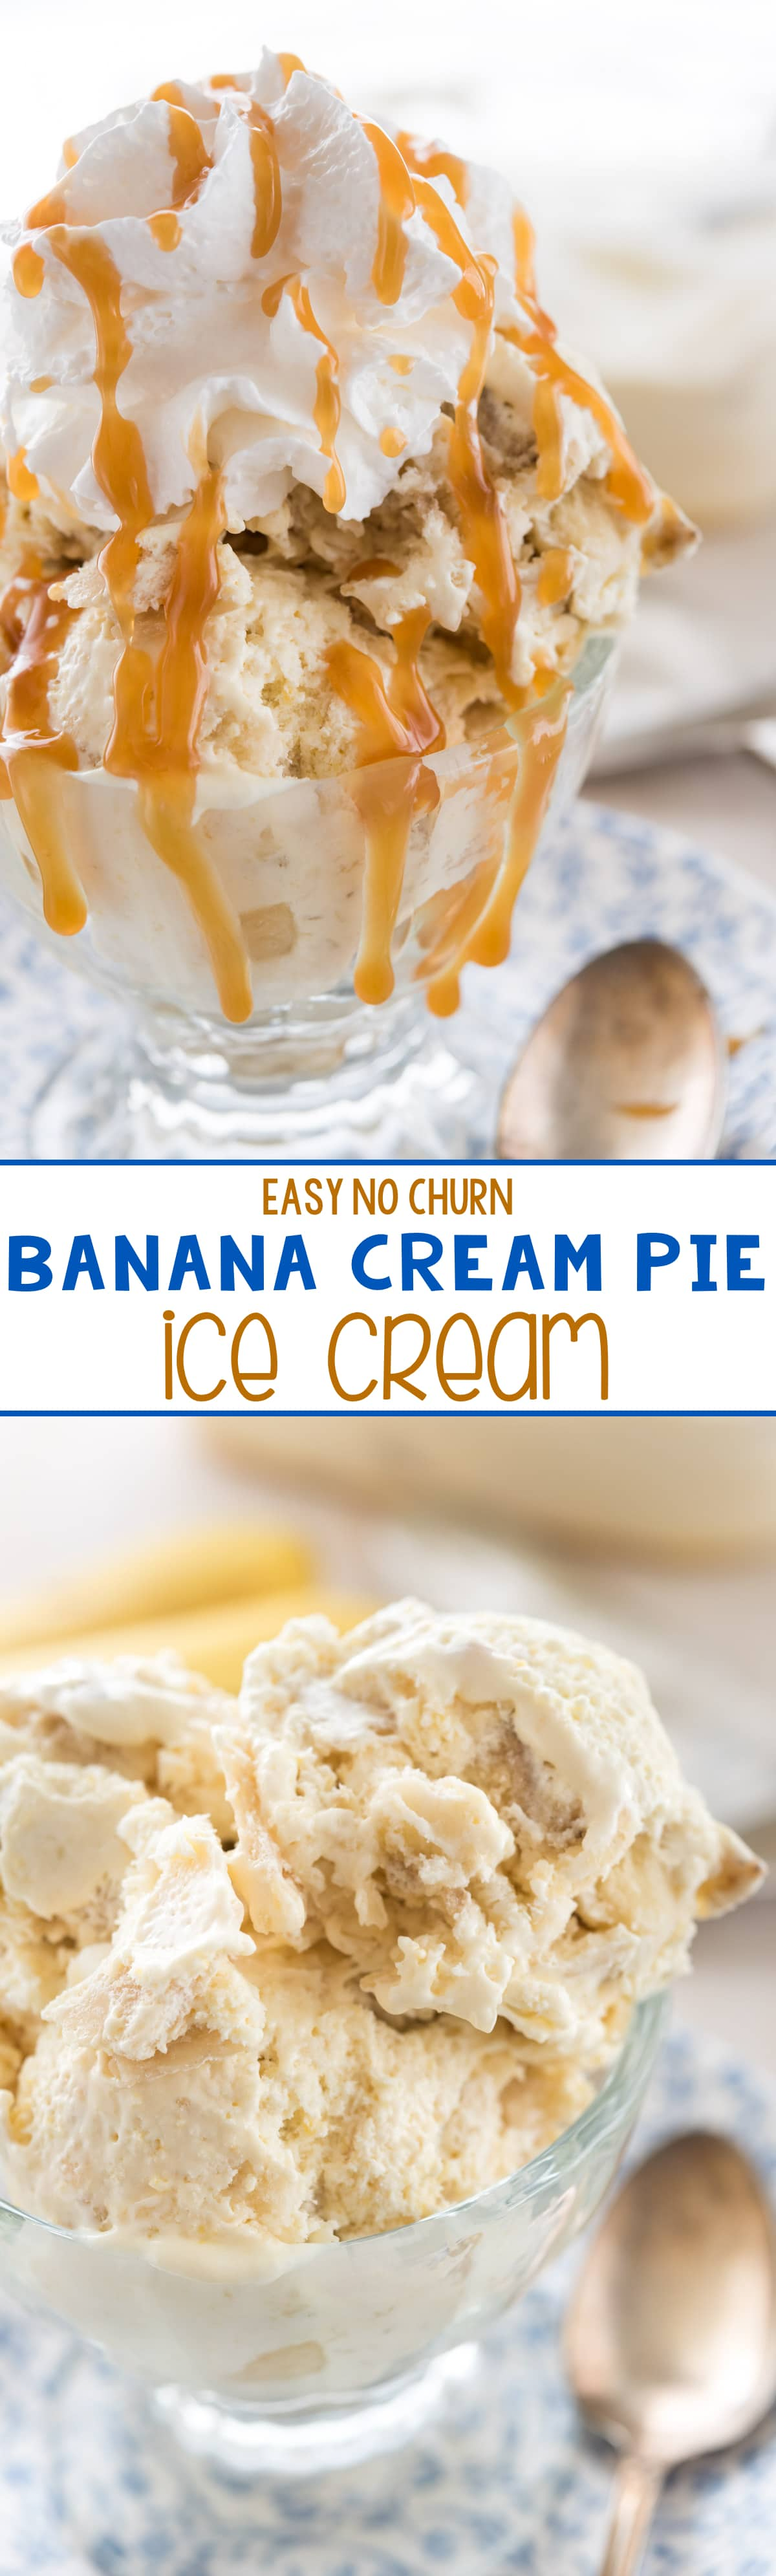 Easy Banana Cream Pie Ice Cream - this No Churn Ice Cream Recipe tastes just like a DQ Blizzard!